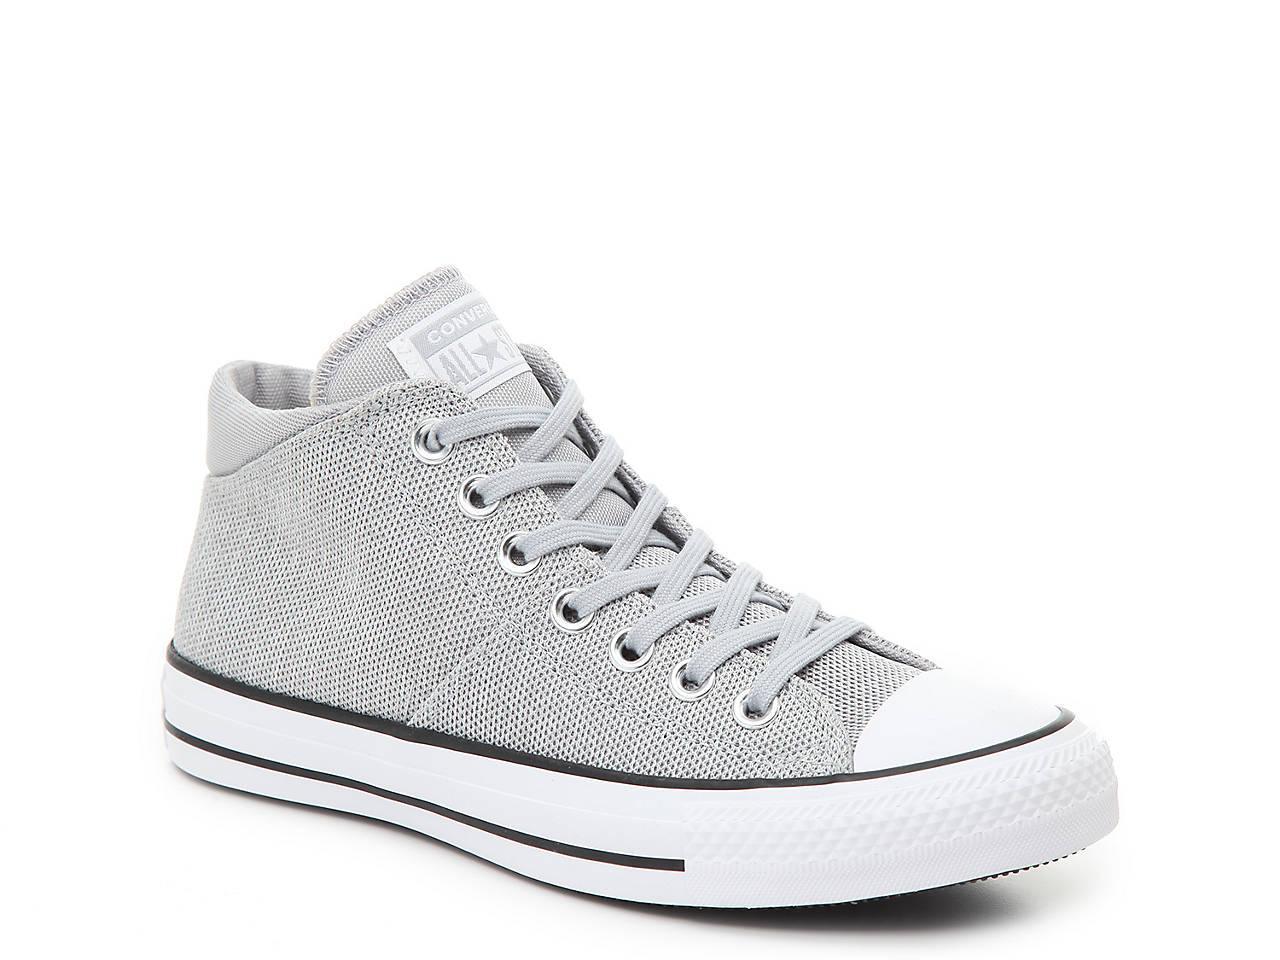 0eae97c23fb273 Converse Chuck Taylor All Star Madison Mid-Top Sneaker - Women s ...